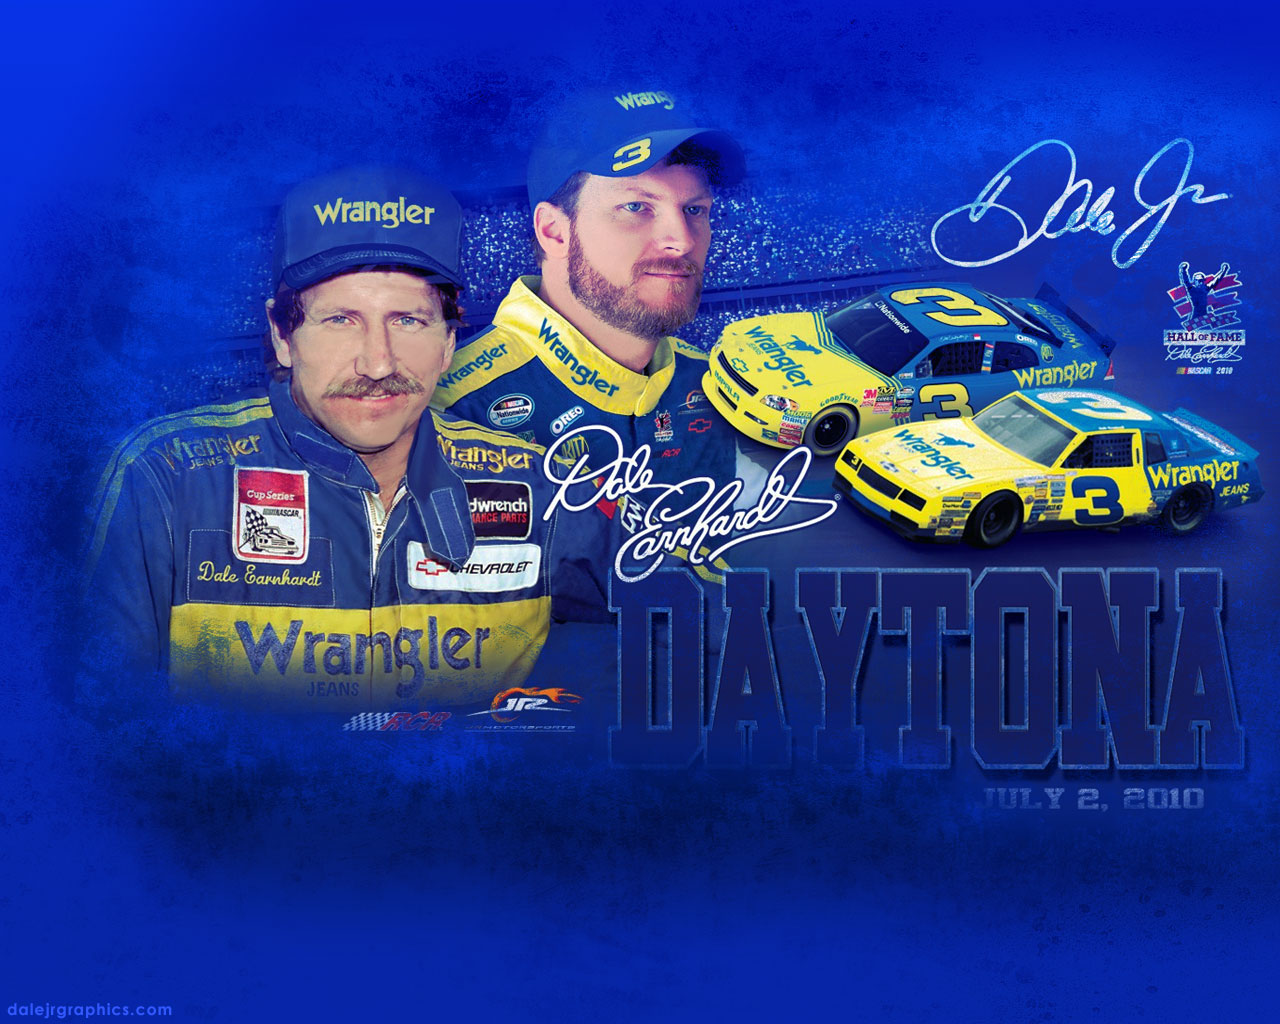 Dale Earnhardt Wallpaper 63 Image Collections Of: Dale Earnhardt Jr Wallpaper Desktop